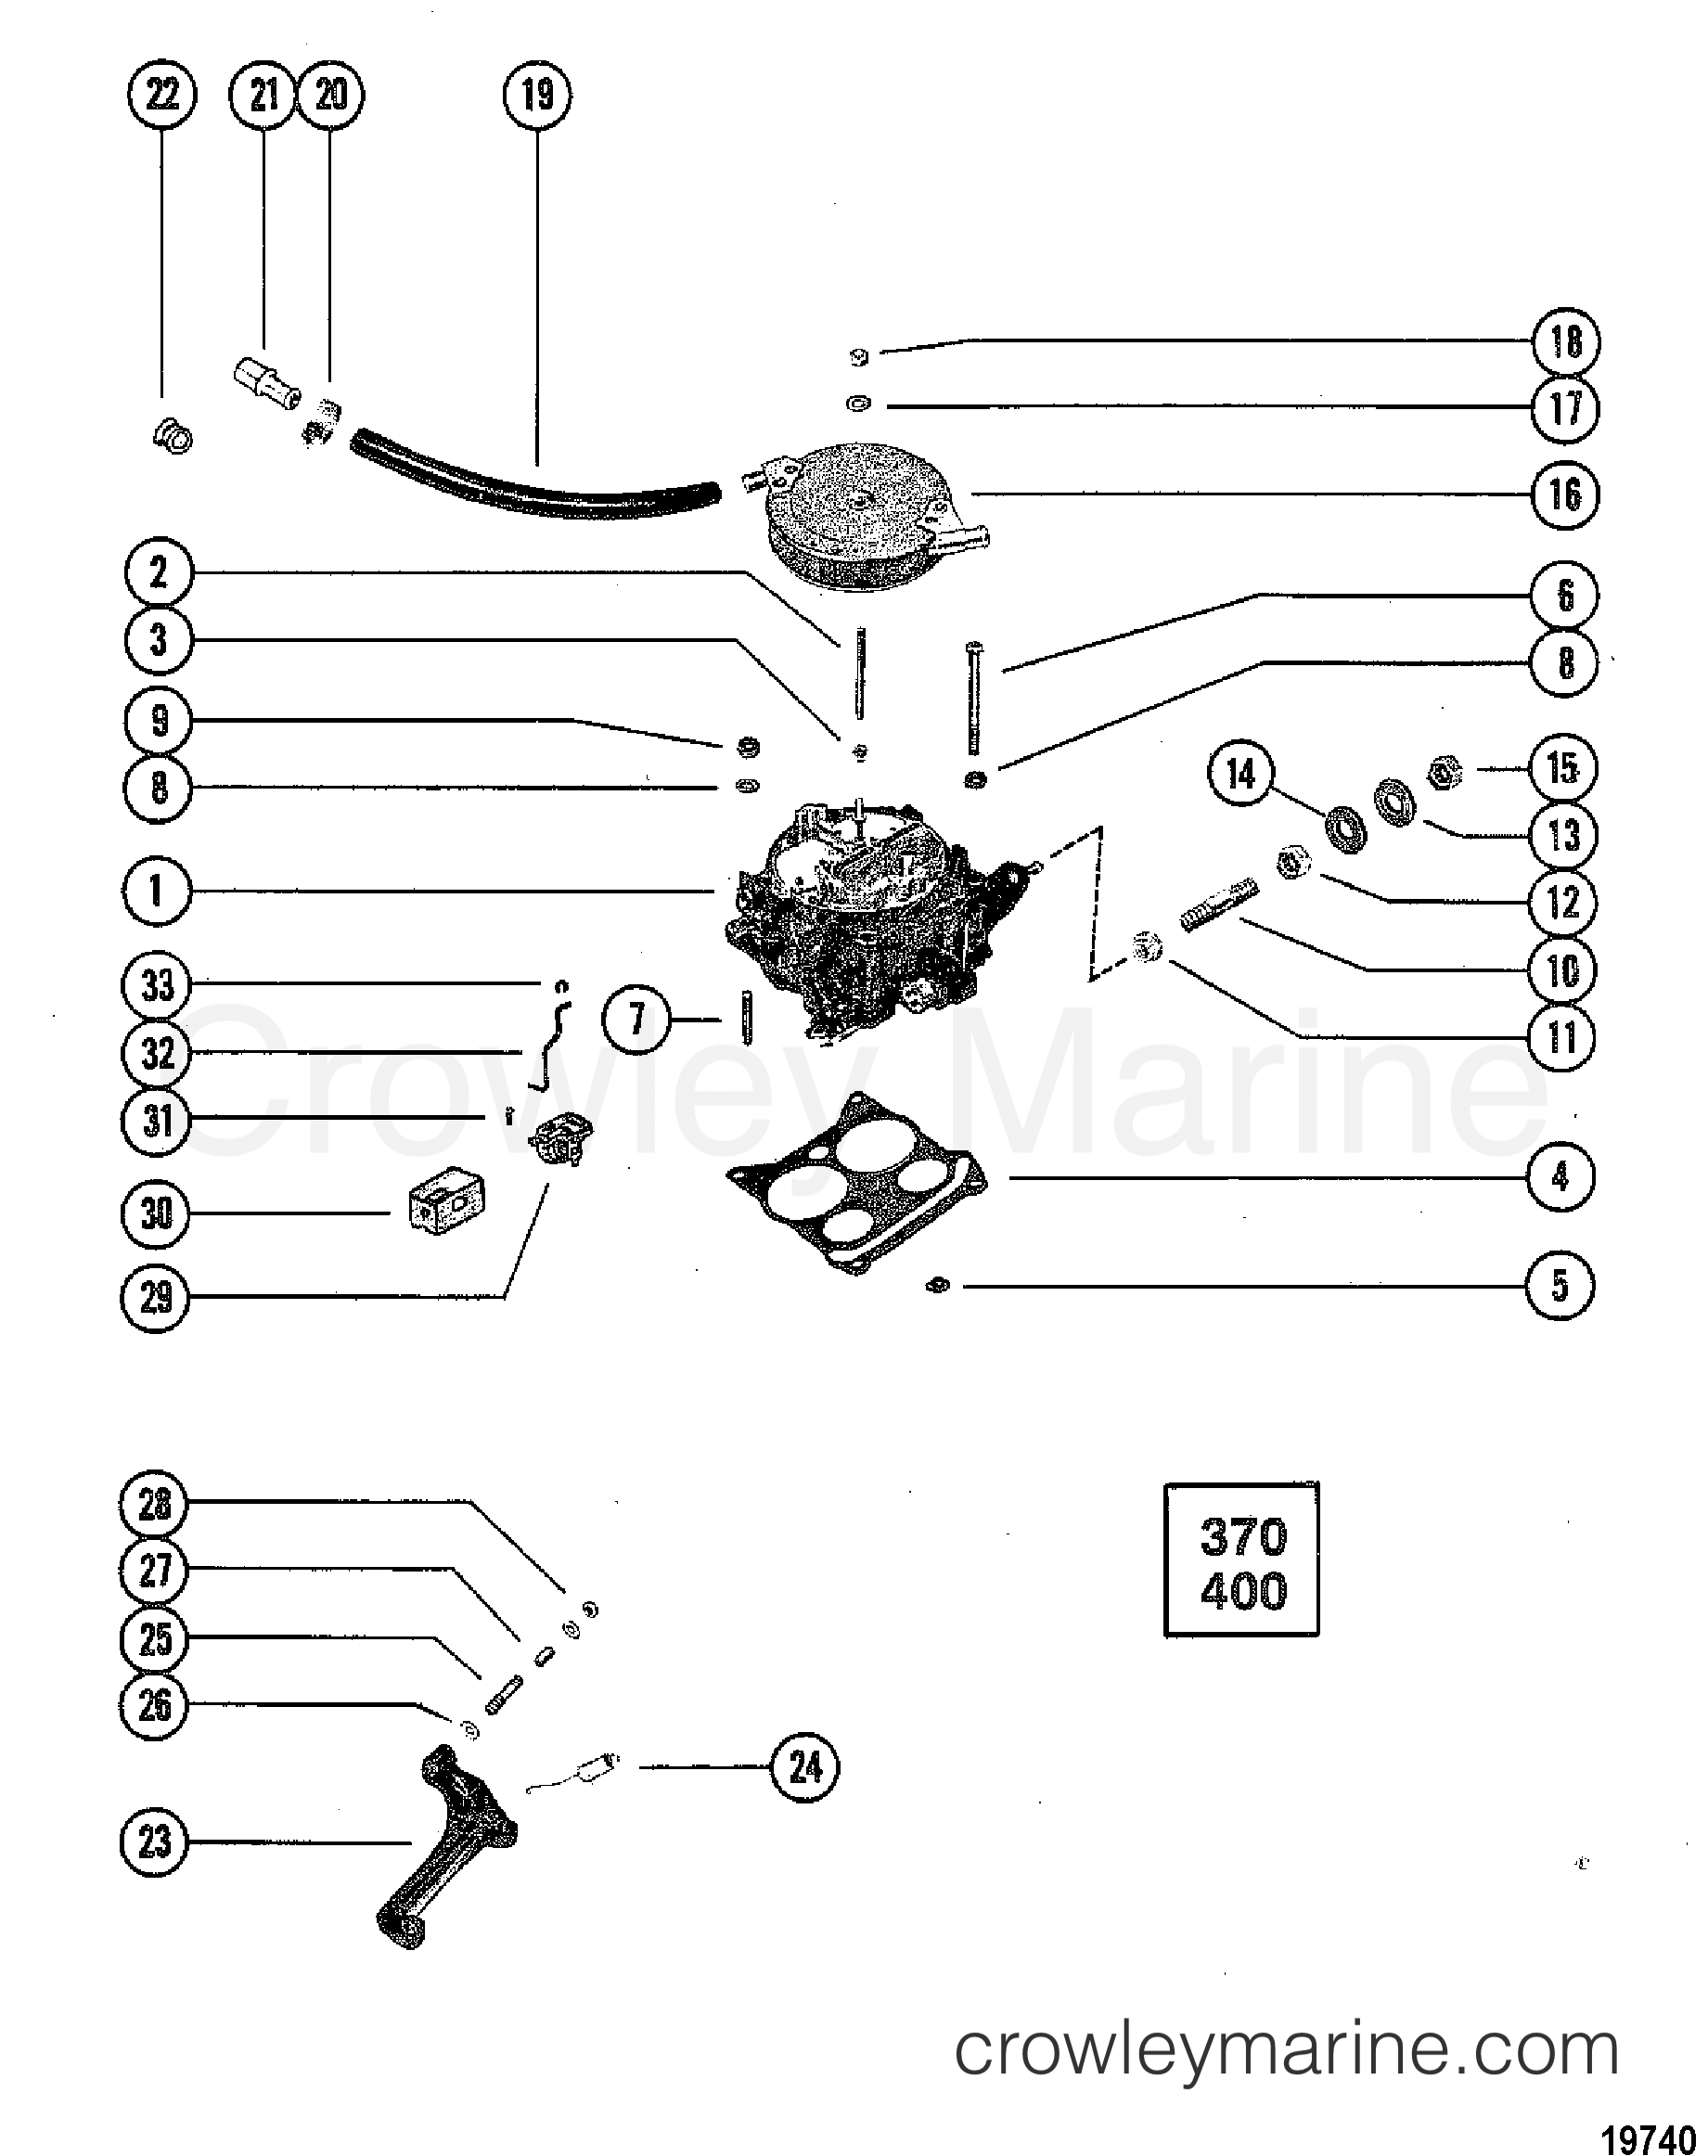 carburetor and automatic choke 370  400